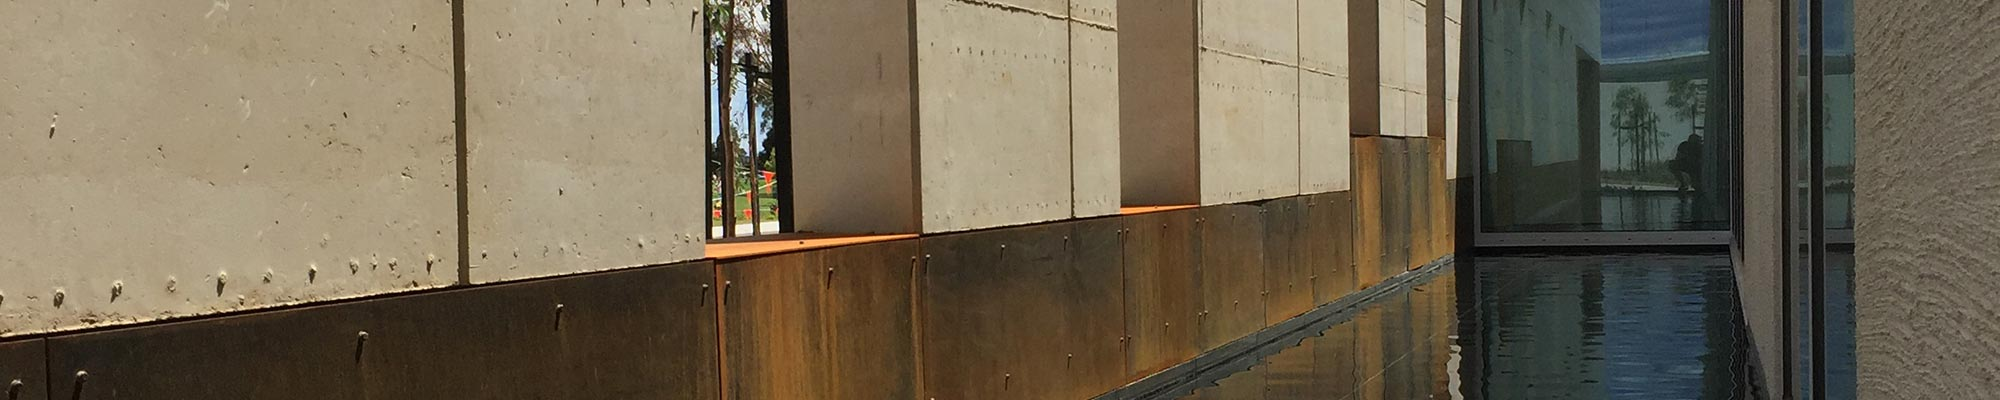 Olnee are rammed earth specialists and can build rammed earth walls, a rammed earth home or other rammed earth construction for you.